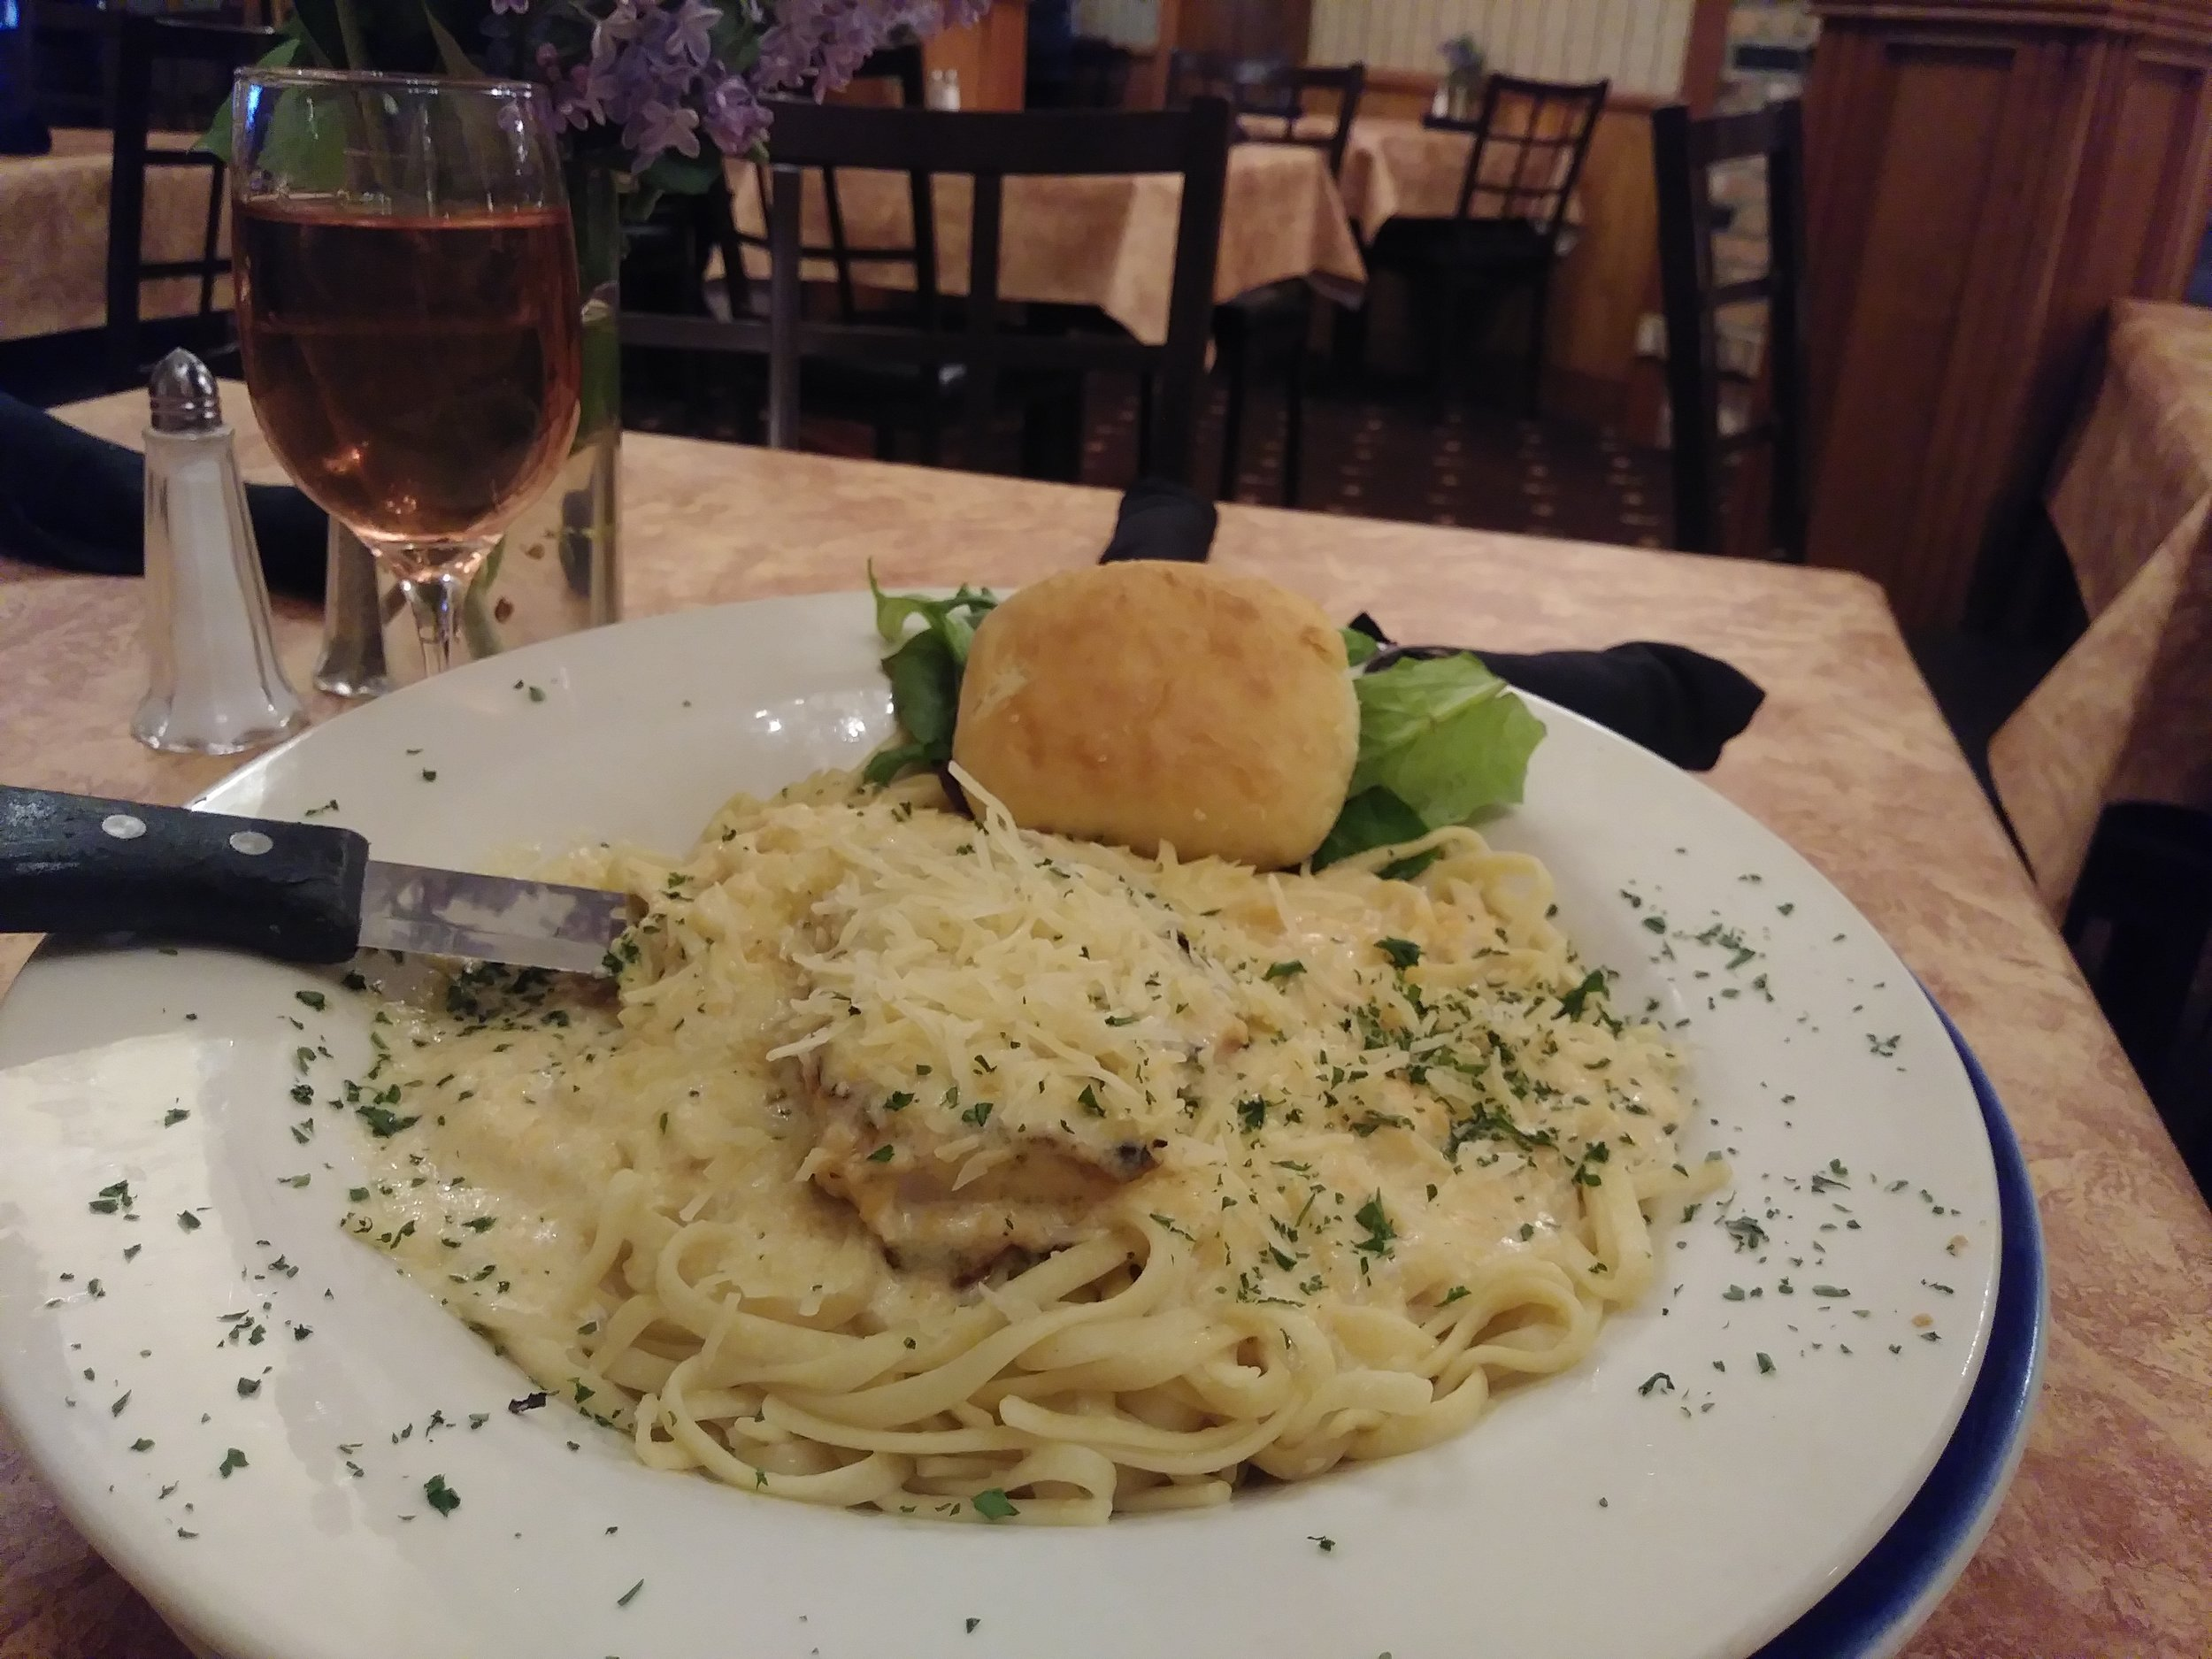 Chicken alfredo - A 6 ounce broiled chicken breast smothered in The Thayer's parmesan sauce, served over linguini$12.99